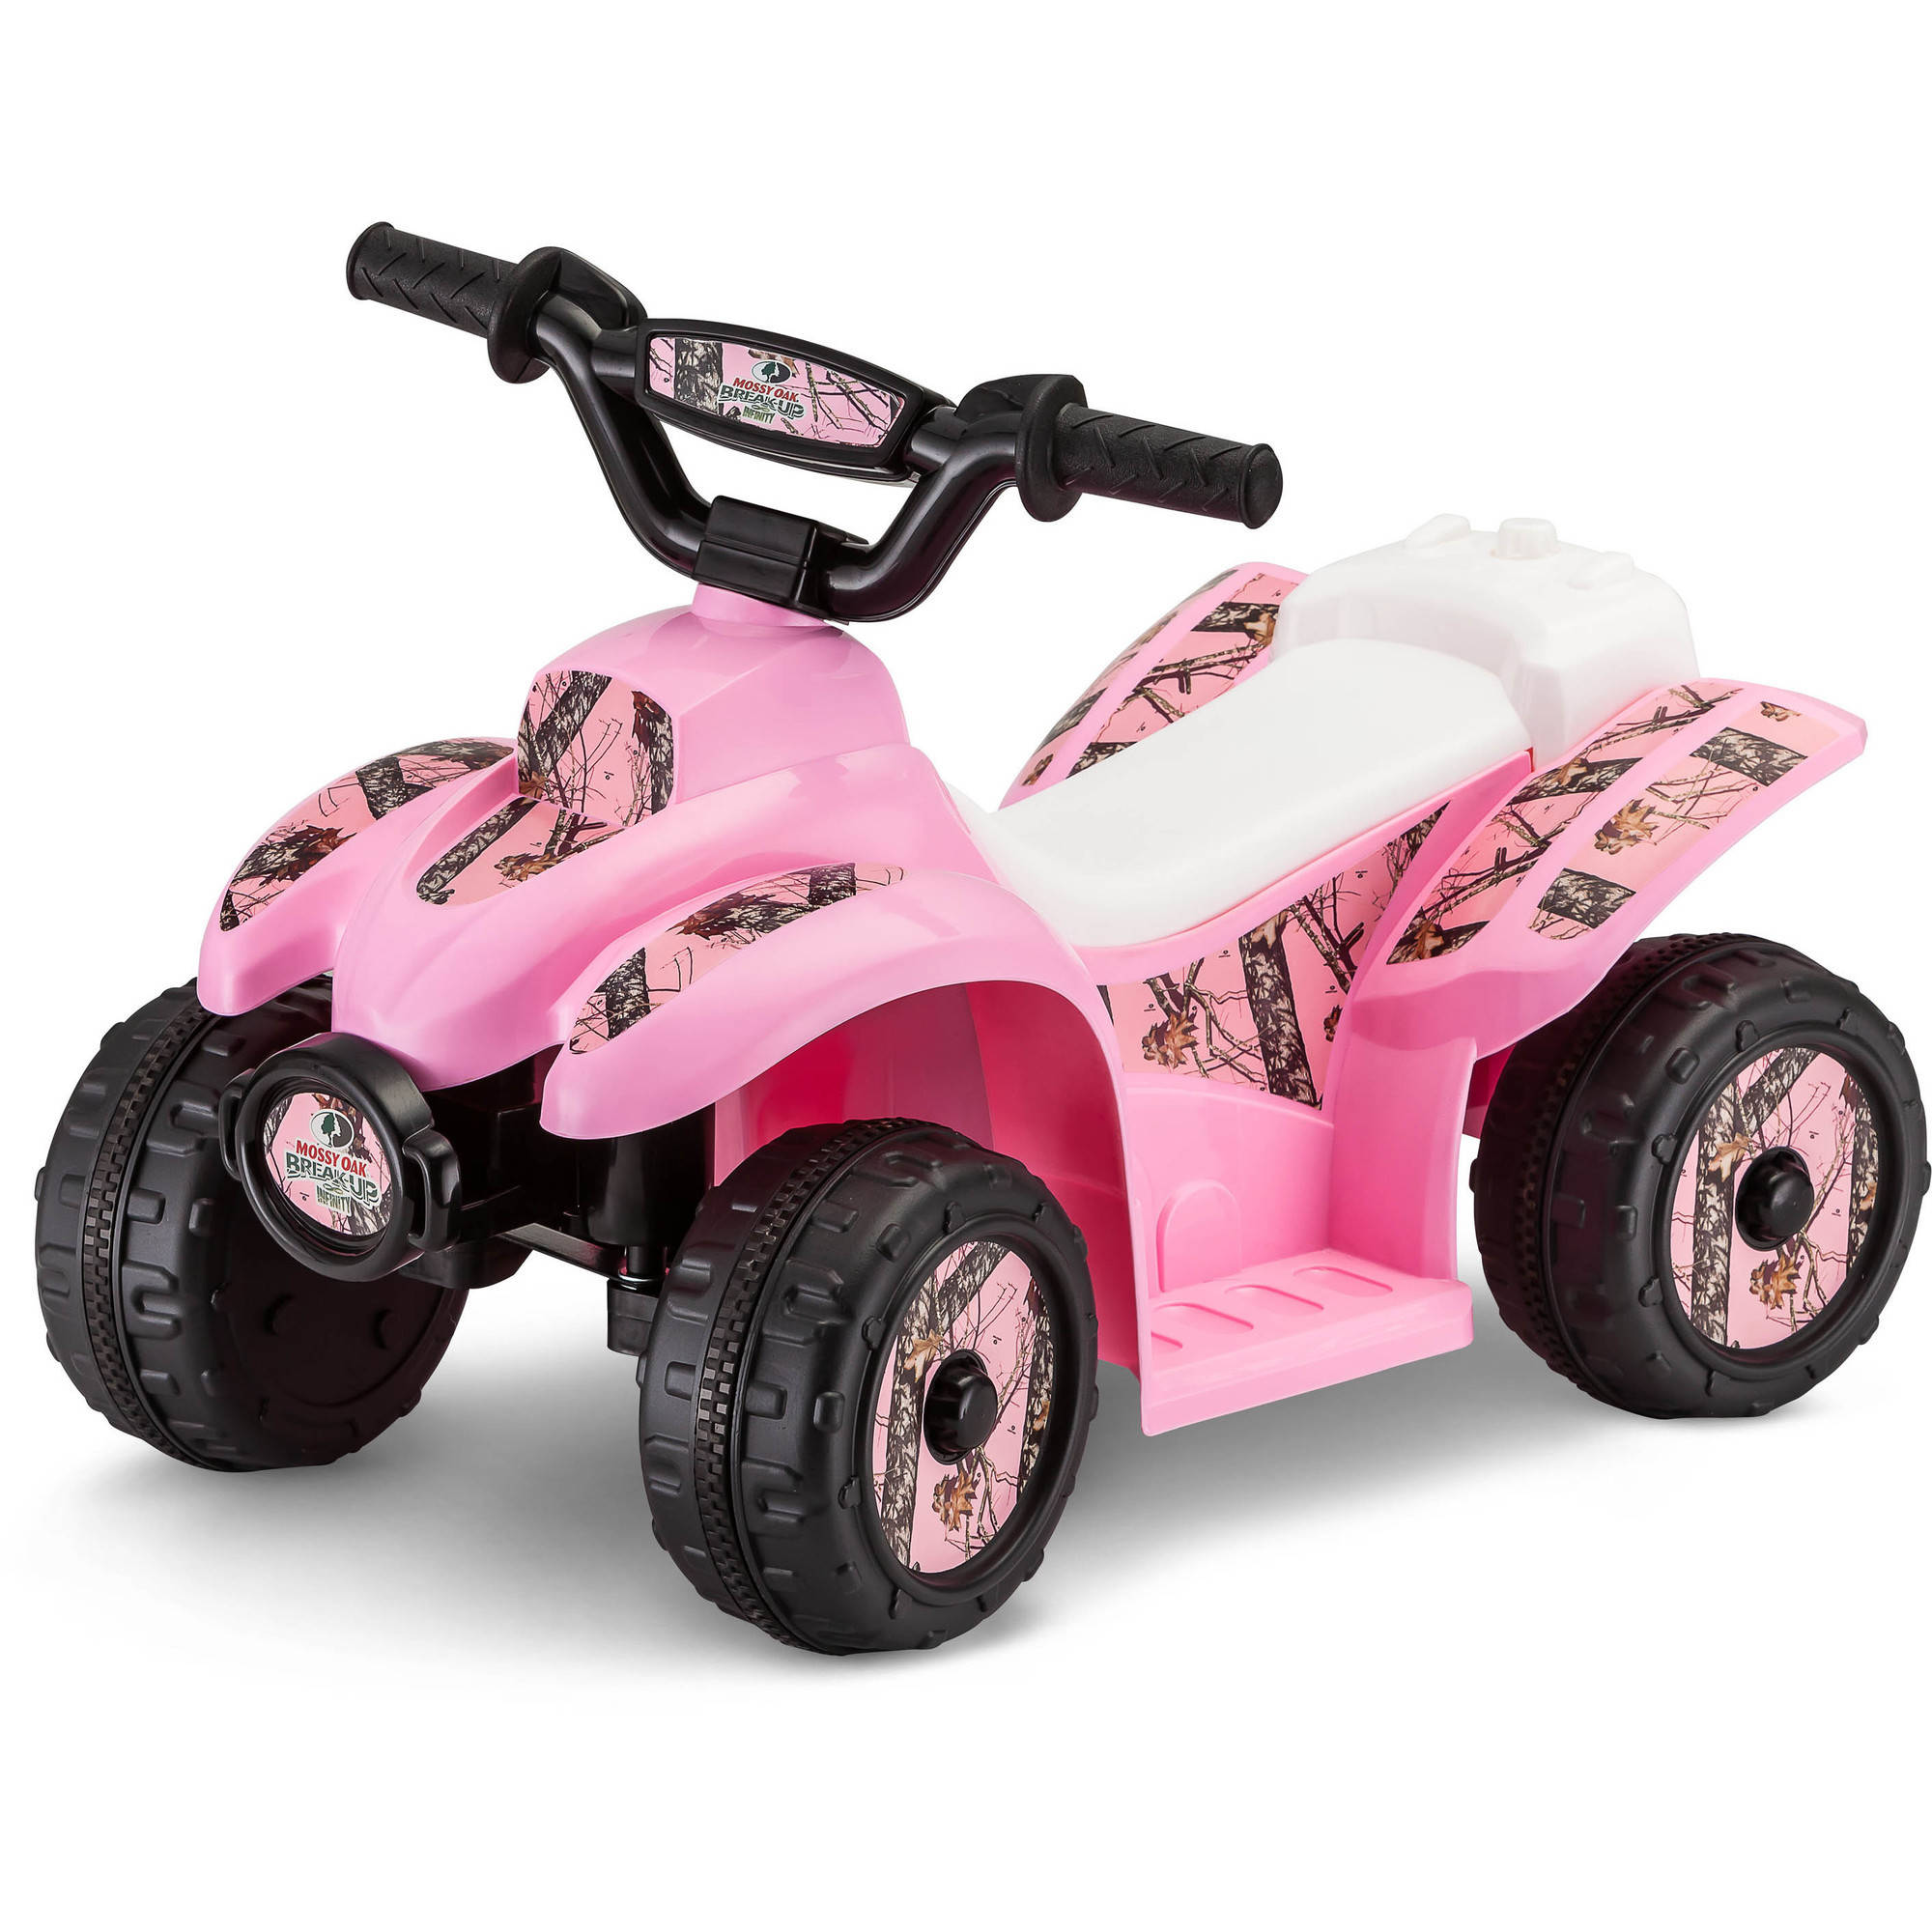 6V Kid Trax Mossy Oak Quad Ride-On, Pink Camo